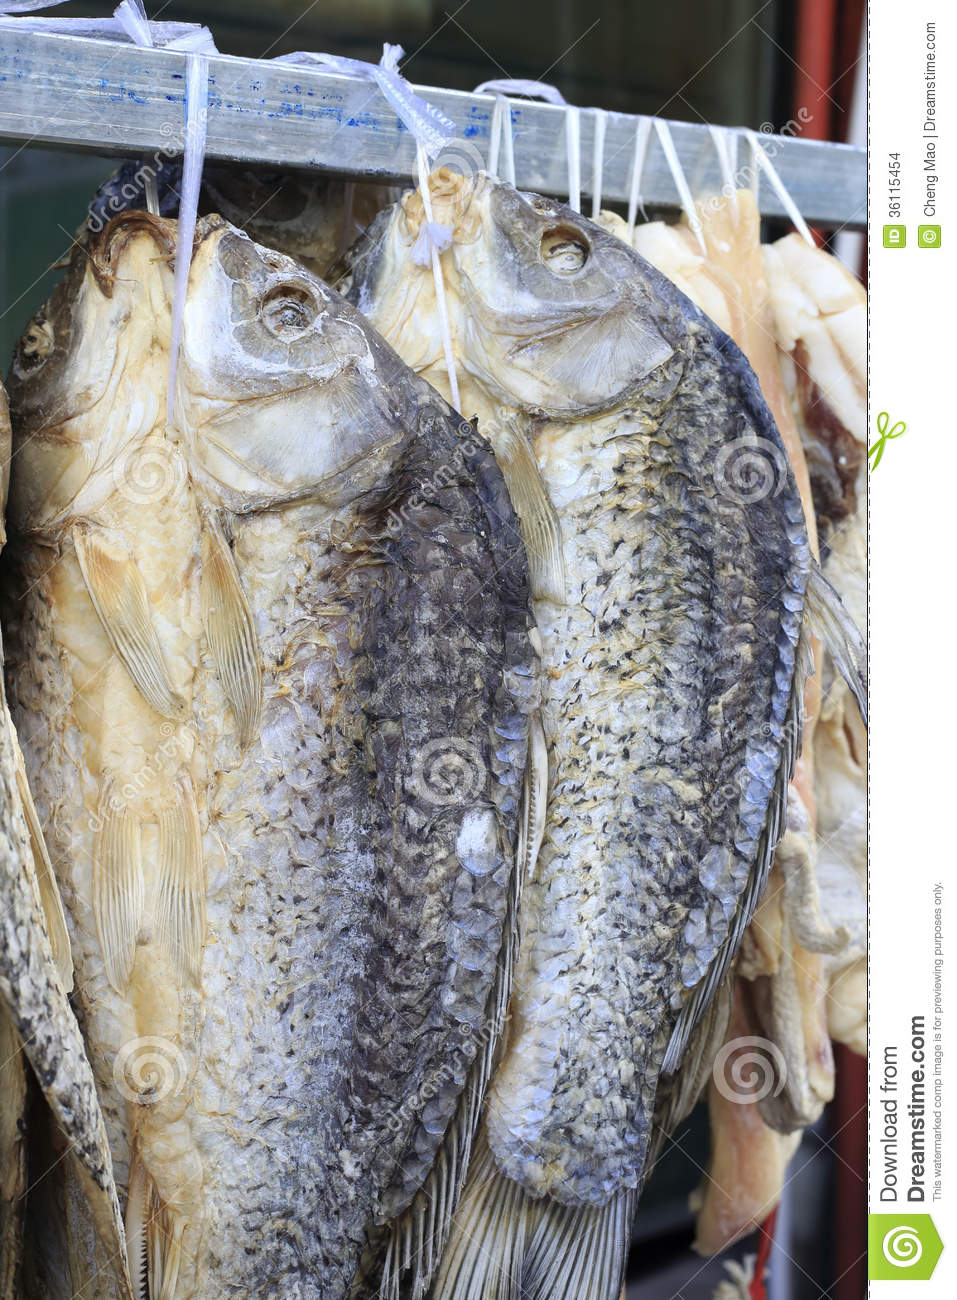 Salted Fish Stock Images - Image: 36115454